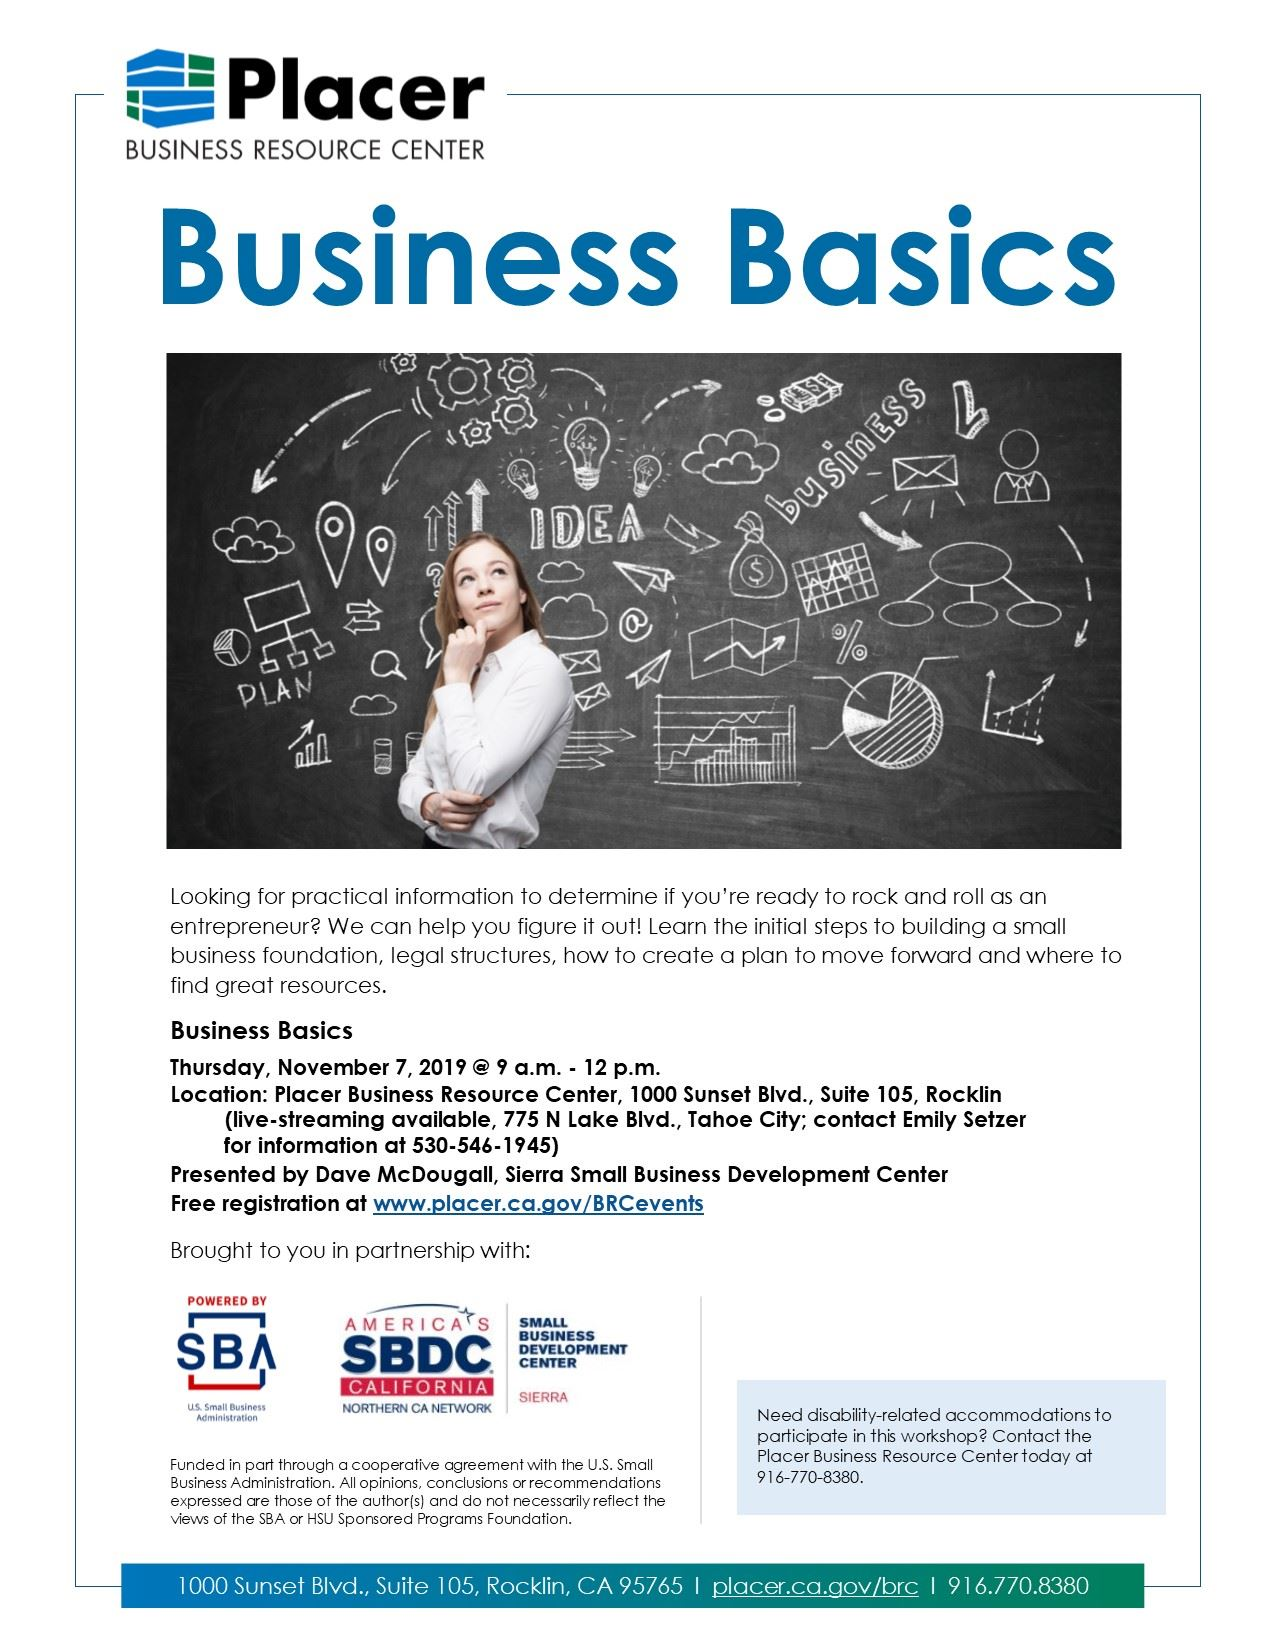 Business Basics-SBDC (11-7)